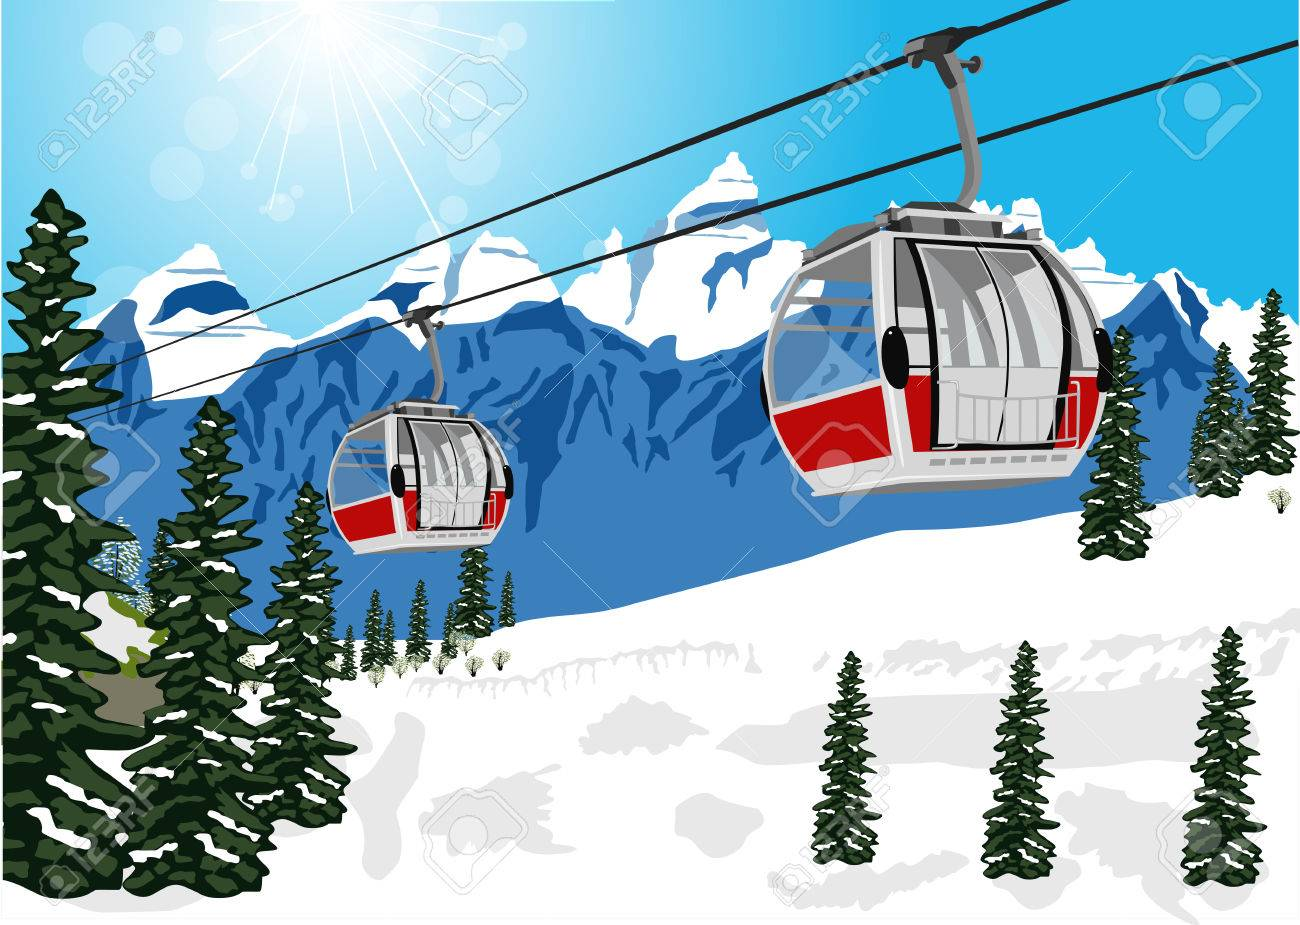 illustration of wonderful winter scenery with ski lift cable booth or car - 51207517